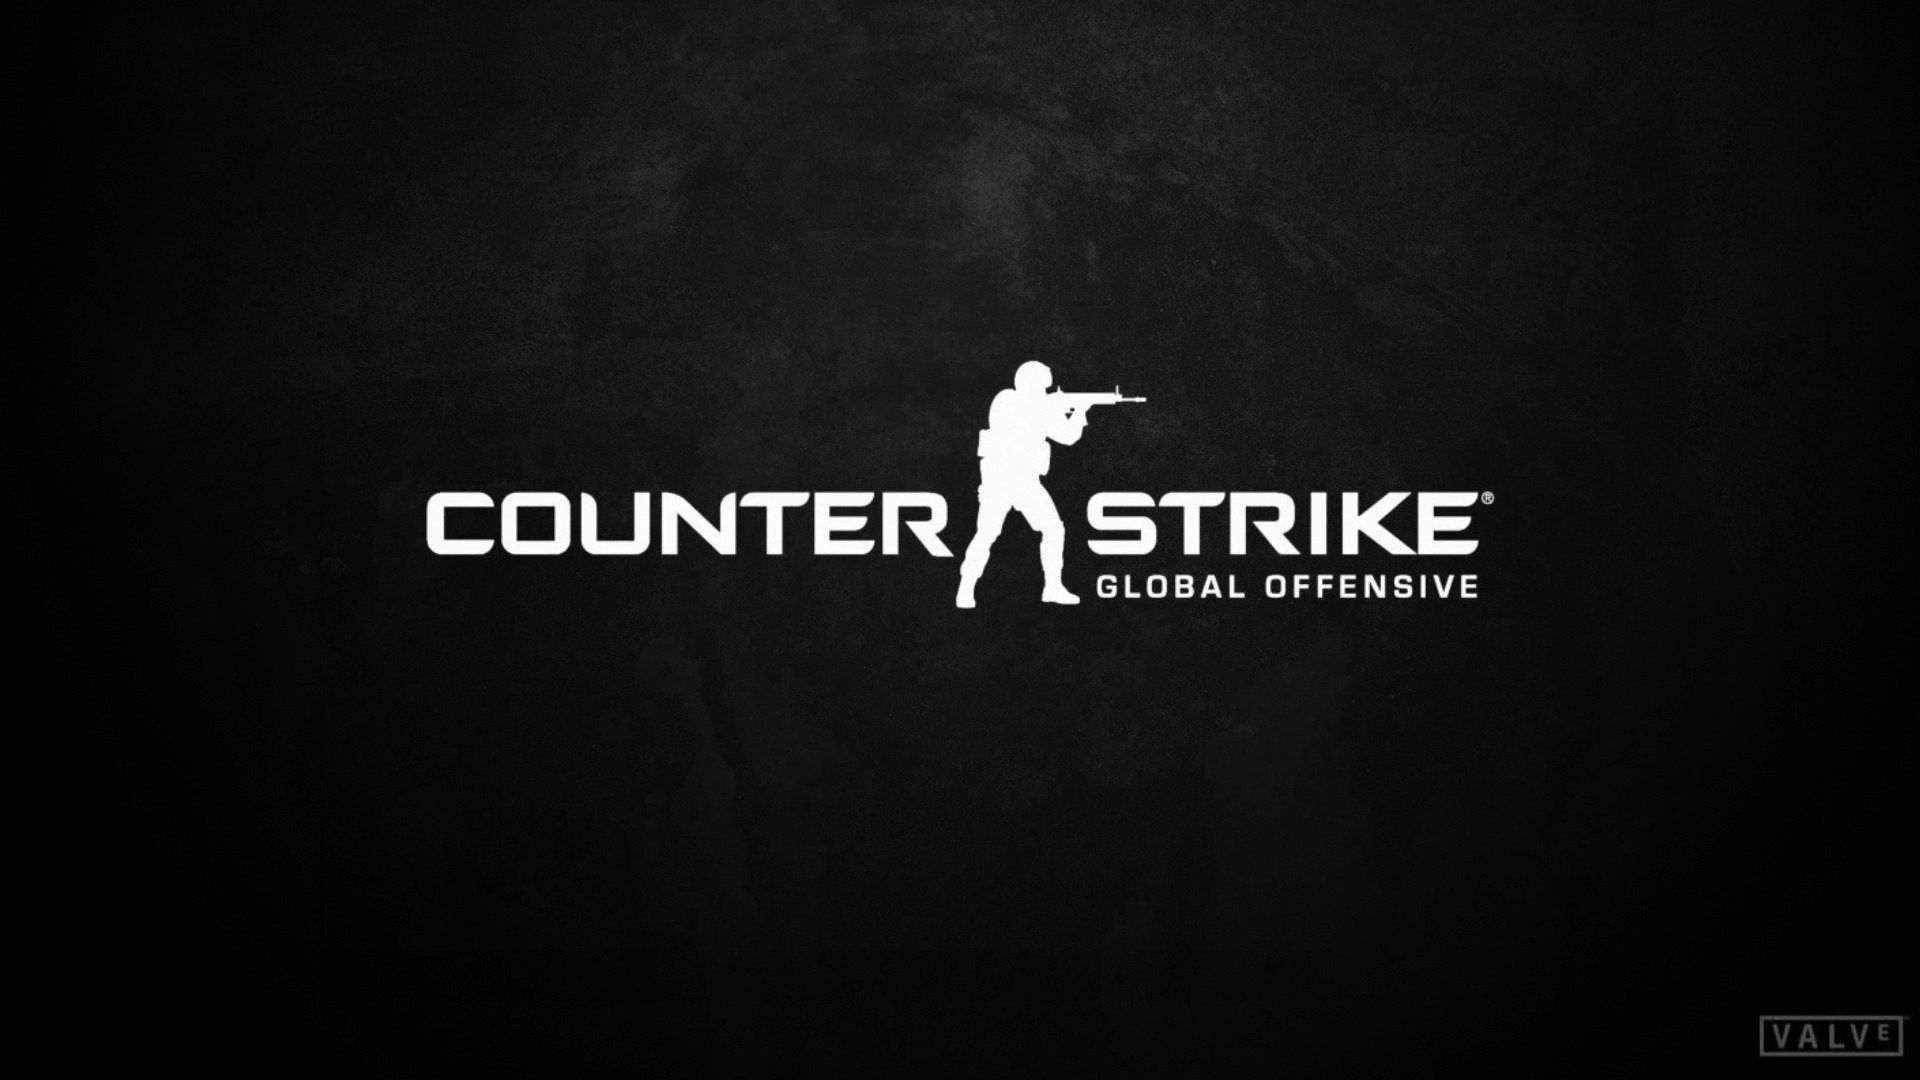 Kelby Bishop Backgrounds In High Quality Counter Strike Global Offensive Wallpaper 1920x1080 Px Counter Strike Offensive